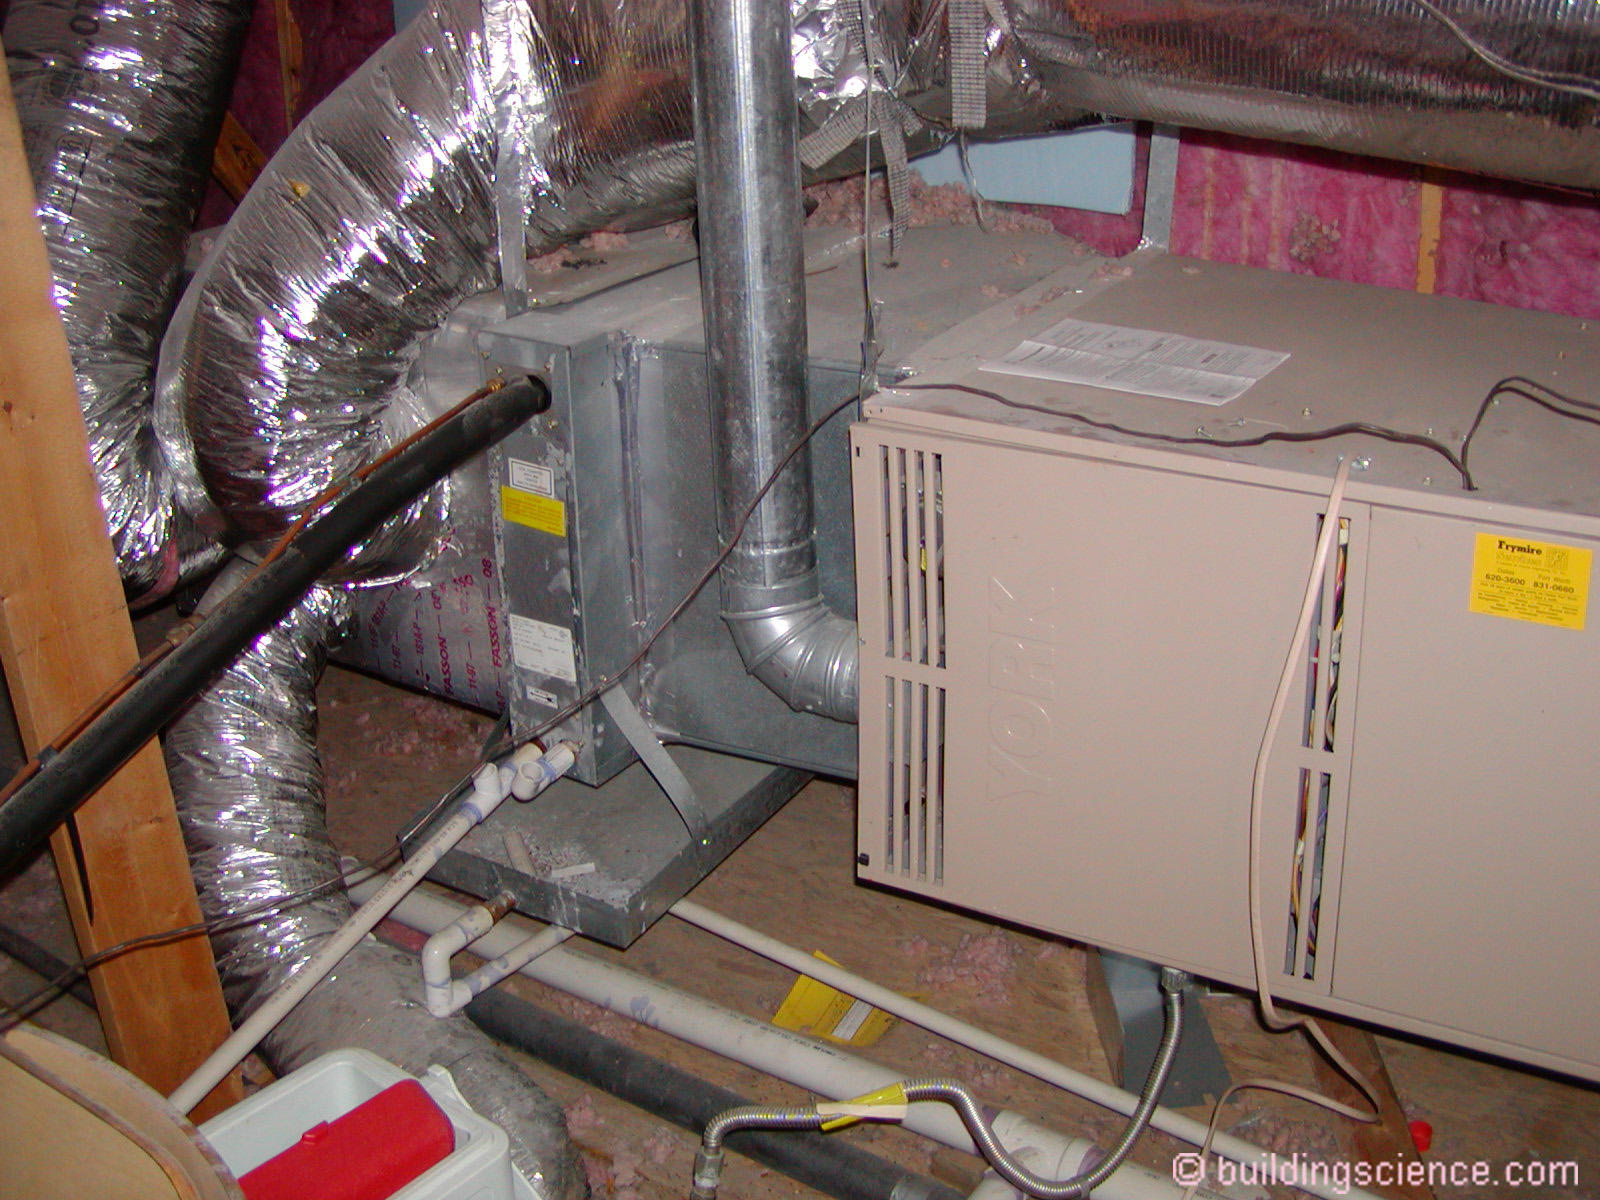 hight resolution of photograph 2 attic air conditioner and furnace standard vented combustion gas furnace with a single stage air conditioner located in a south texas attic